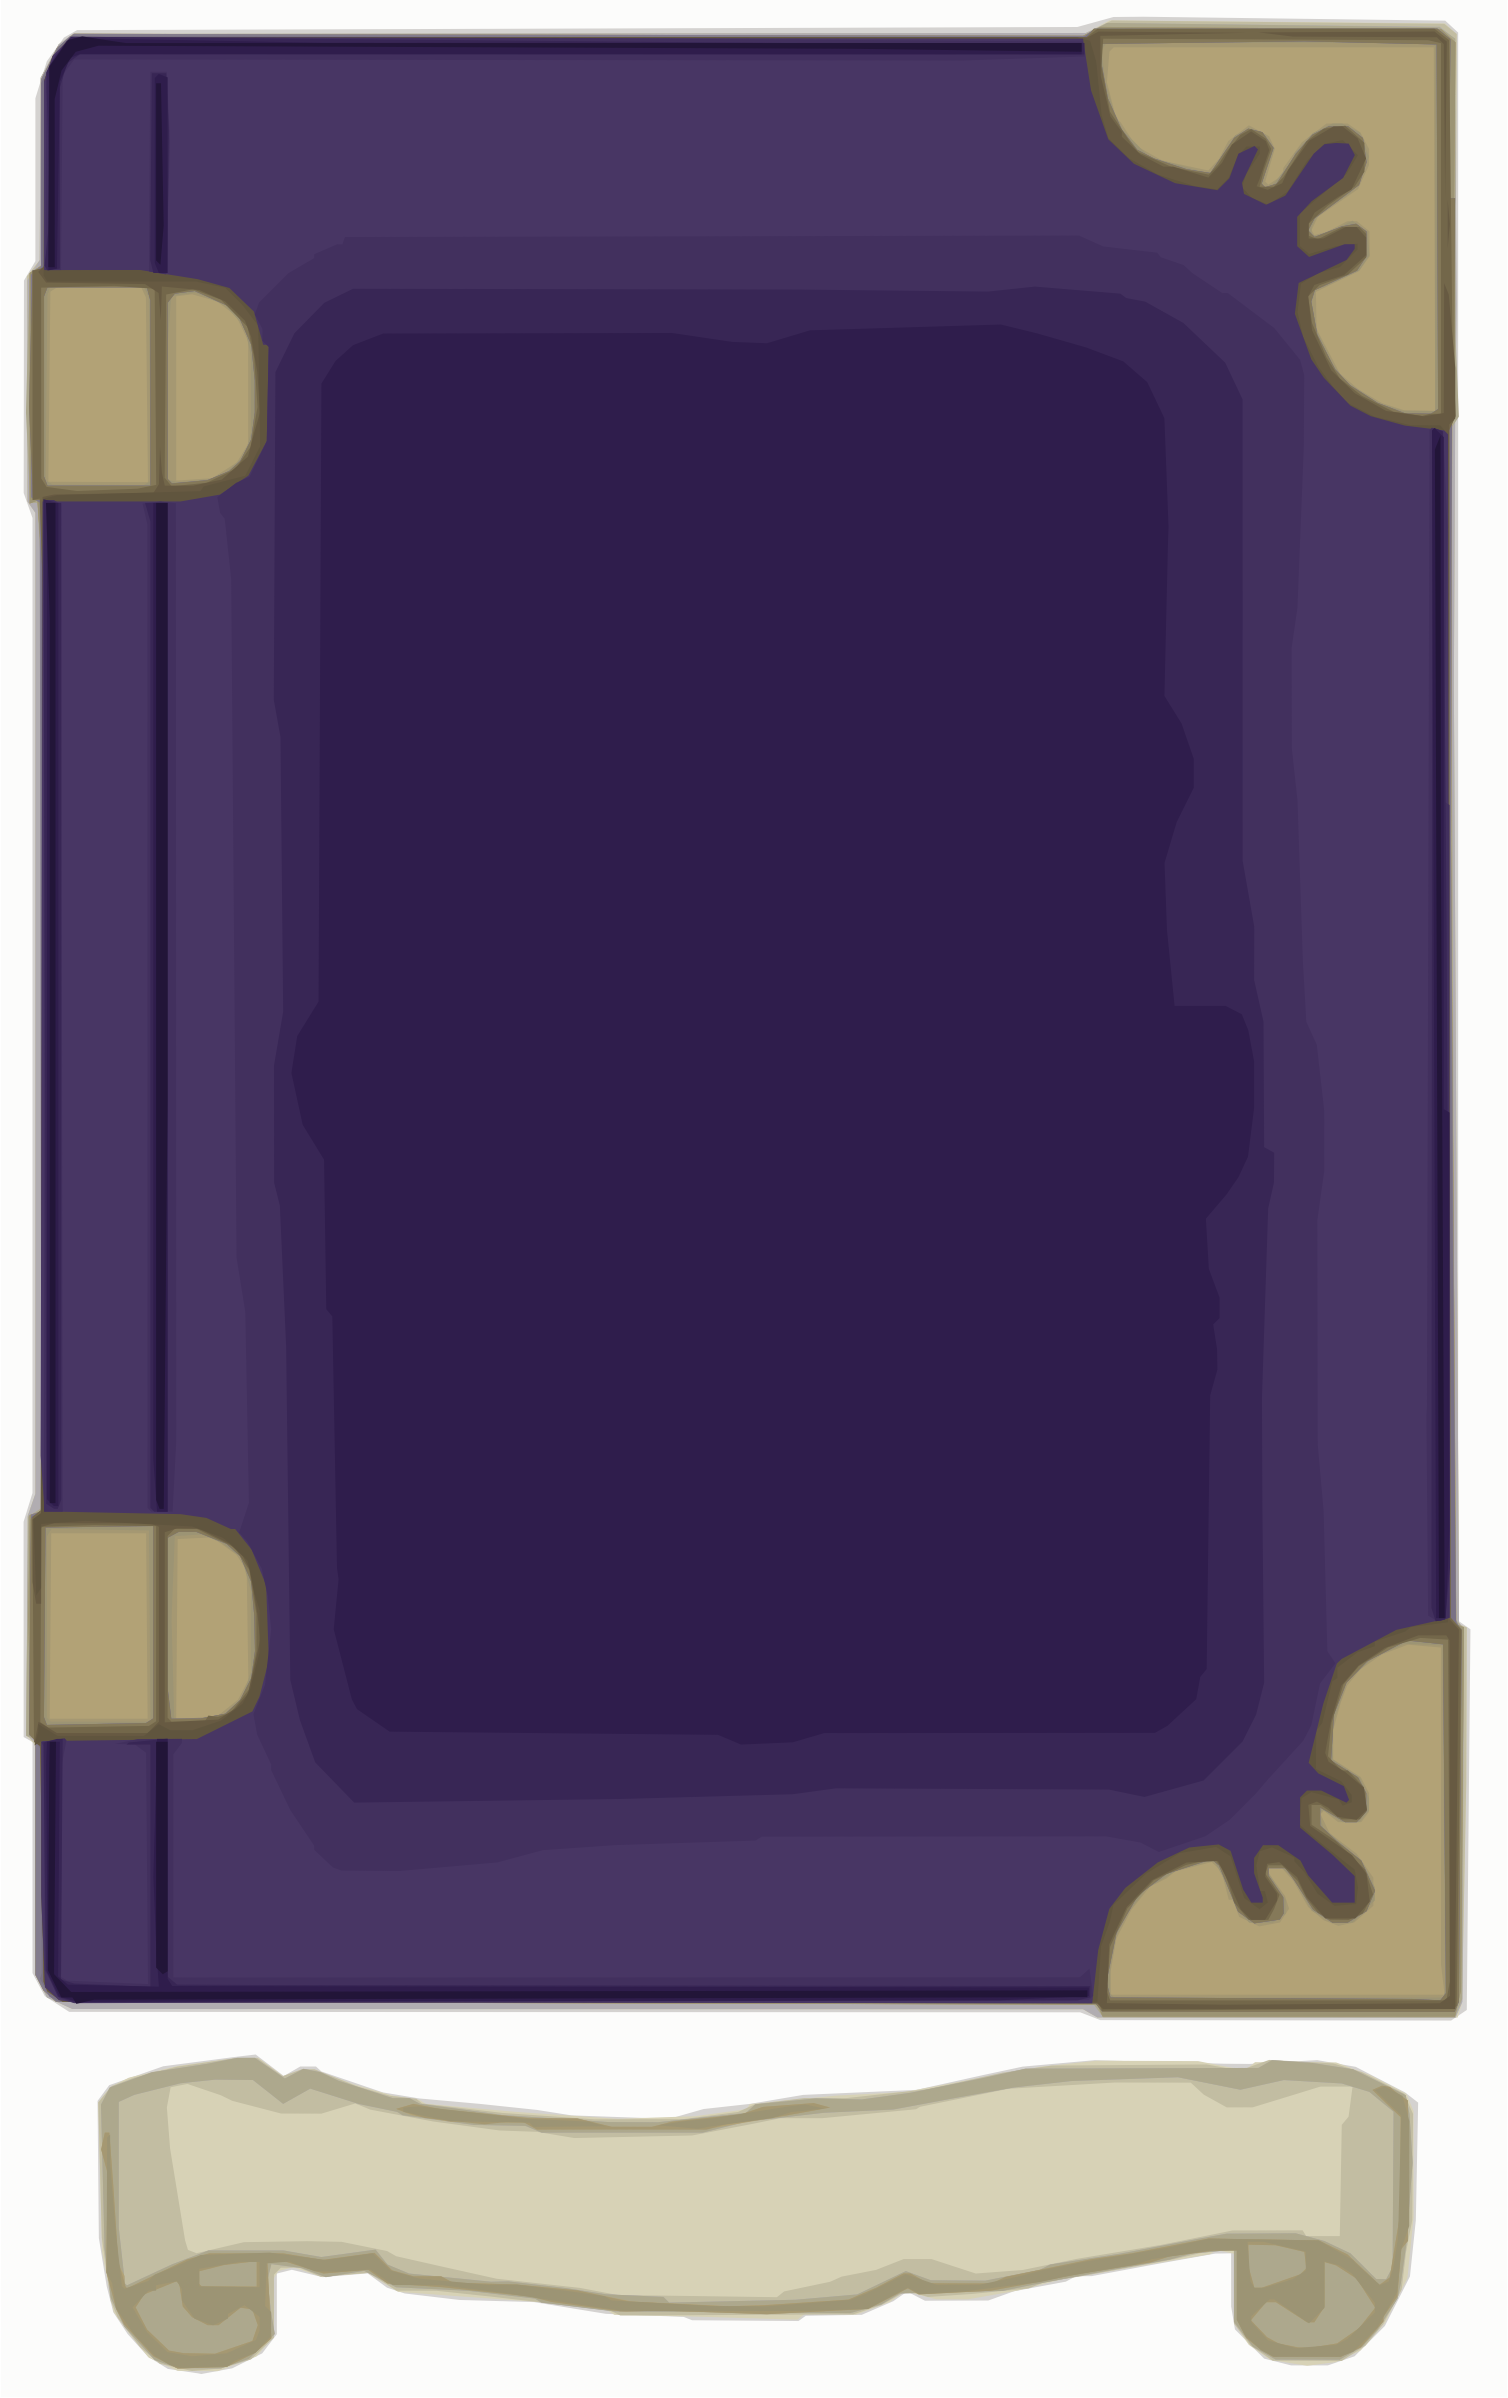 Purple and Gold Book Template by Falco276